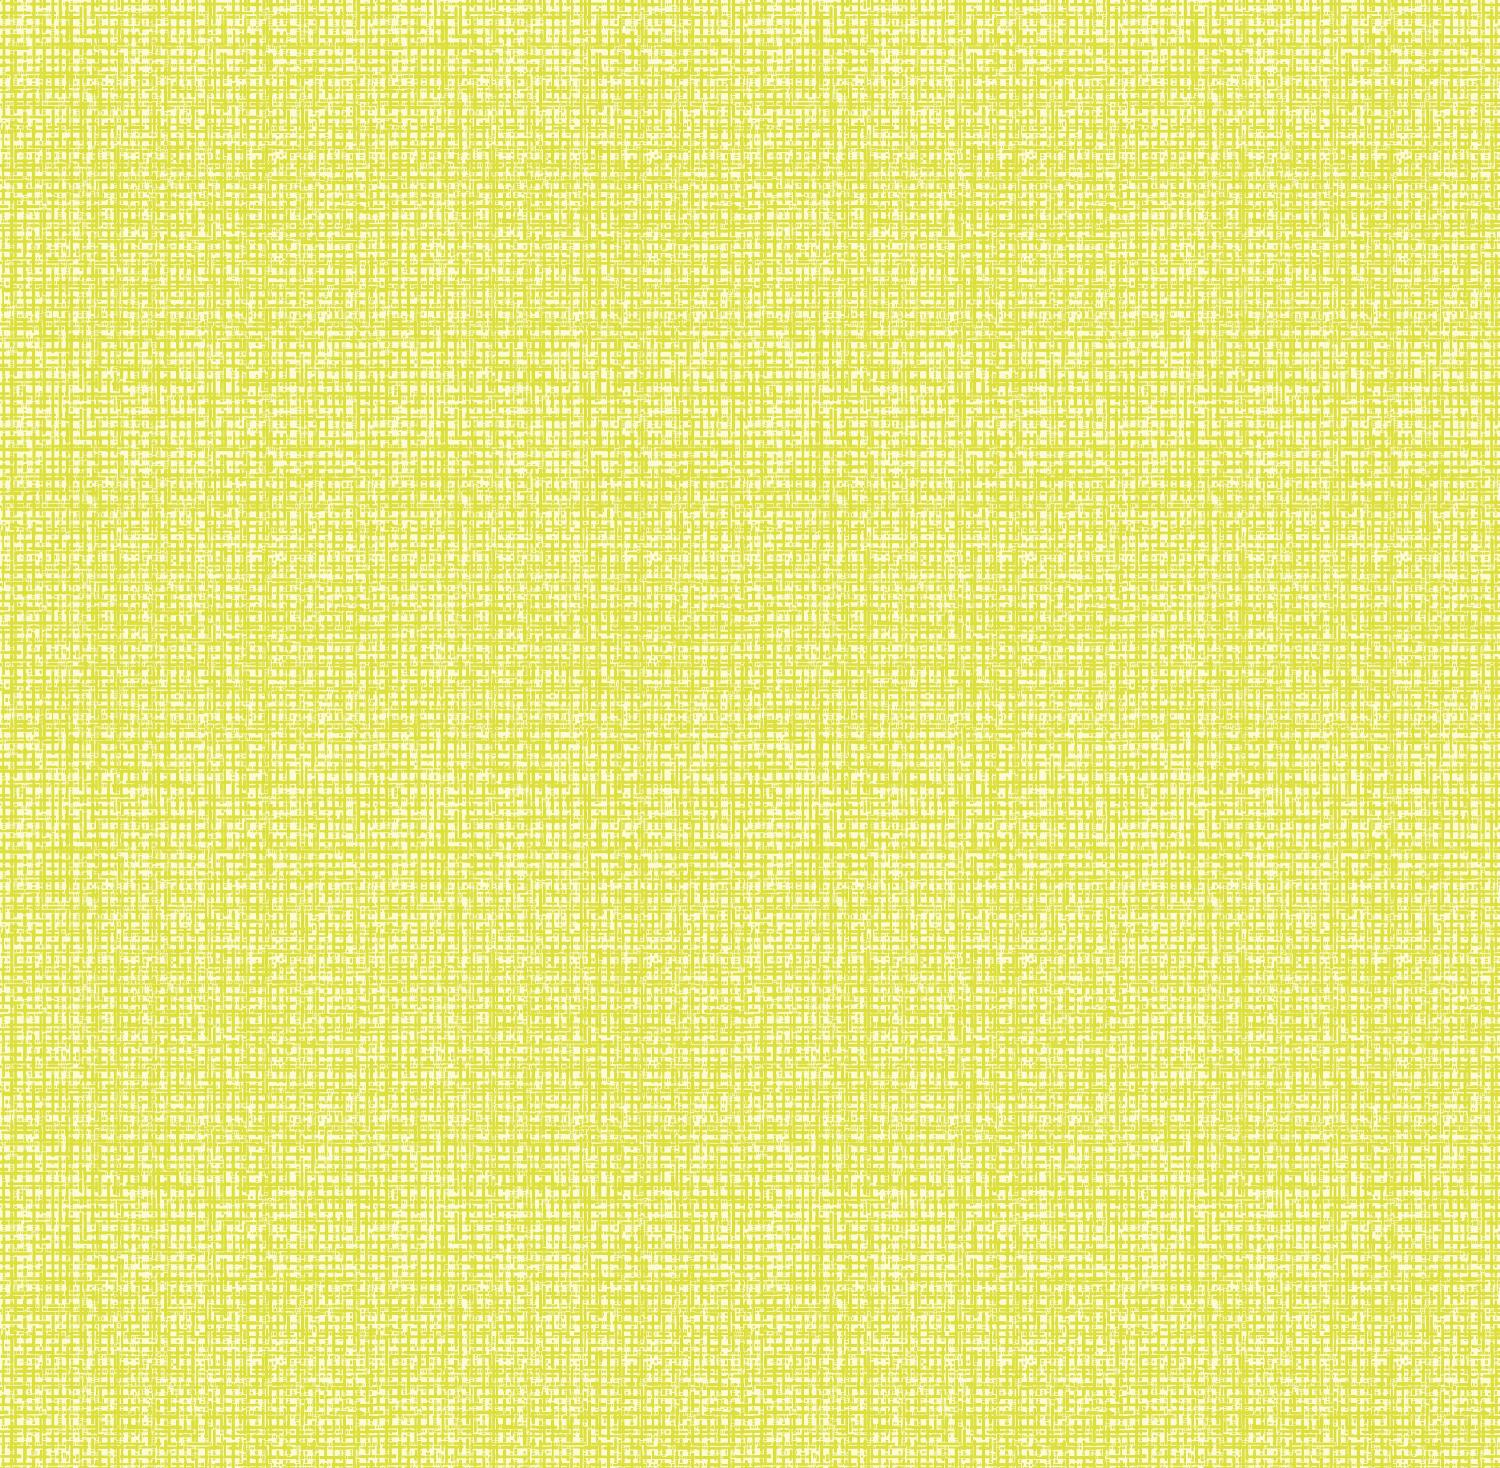 Color Weave #41 Lemon Lime